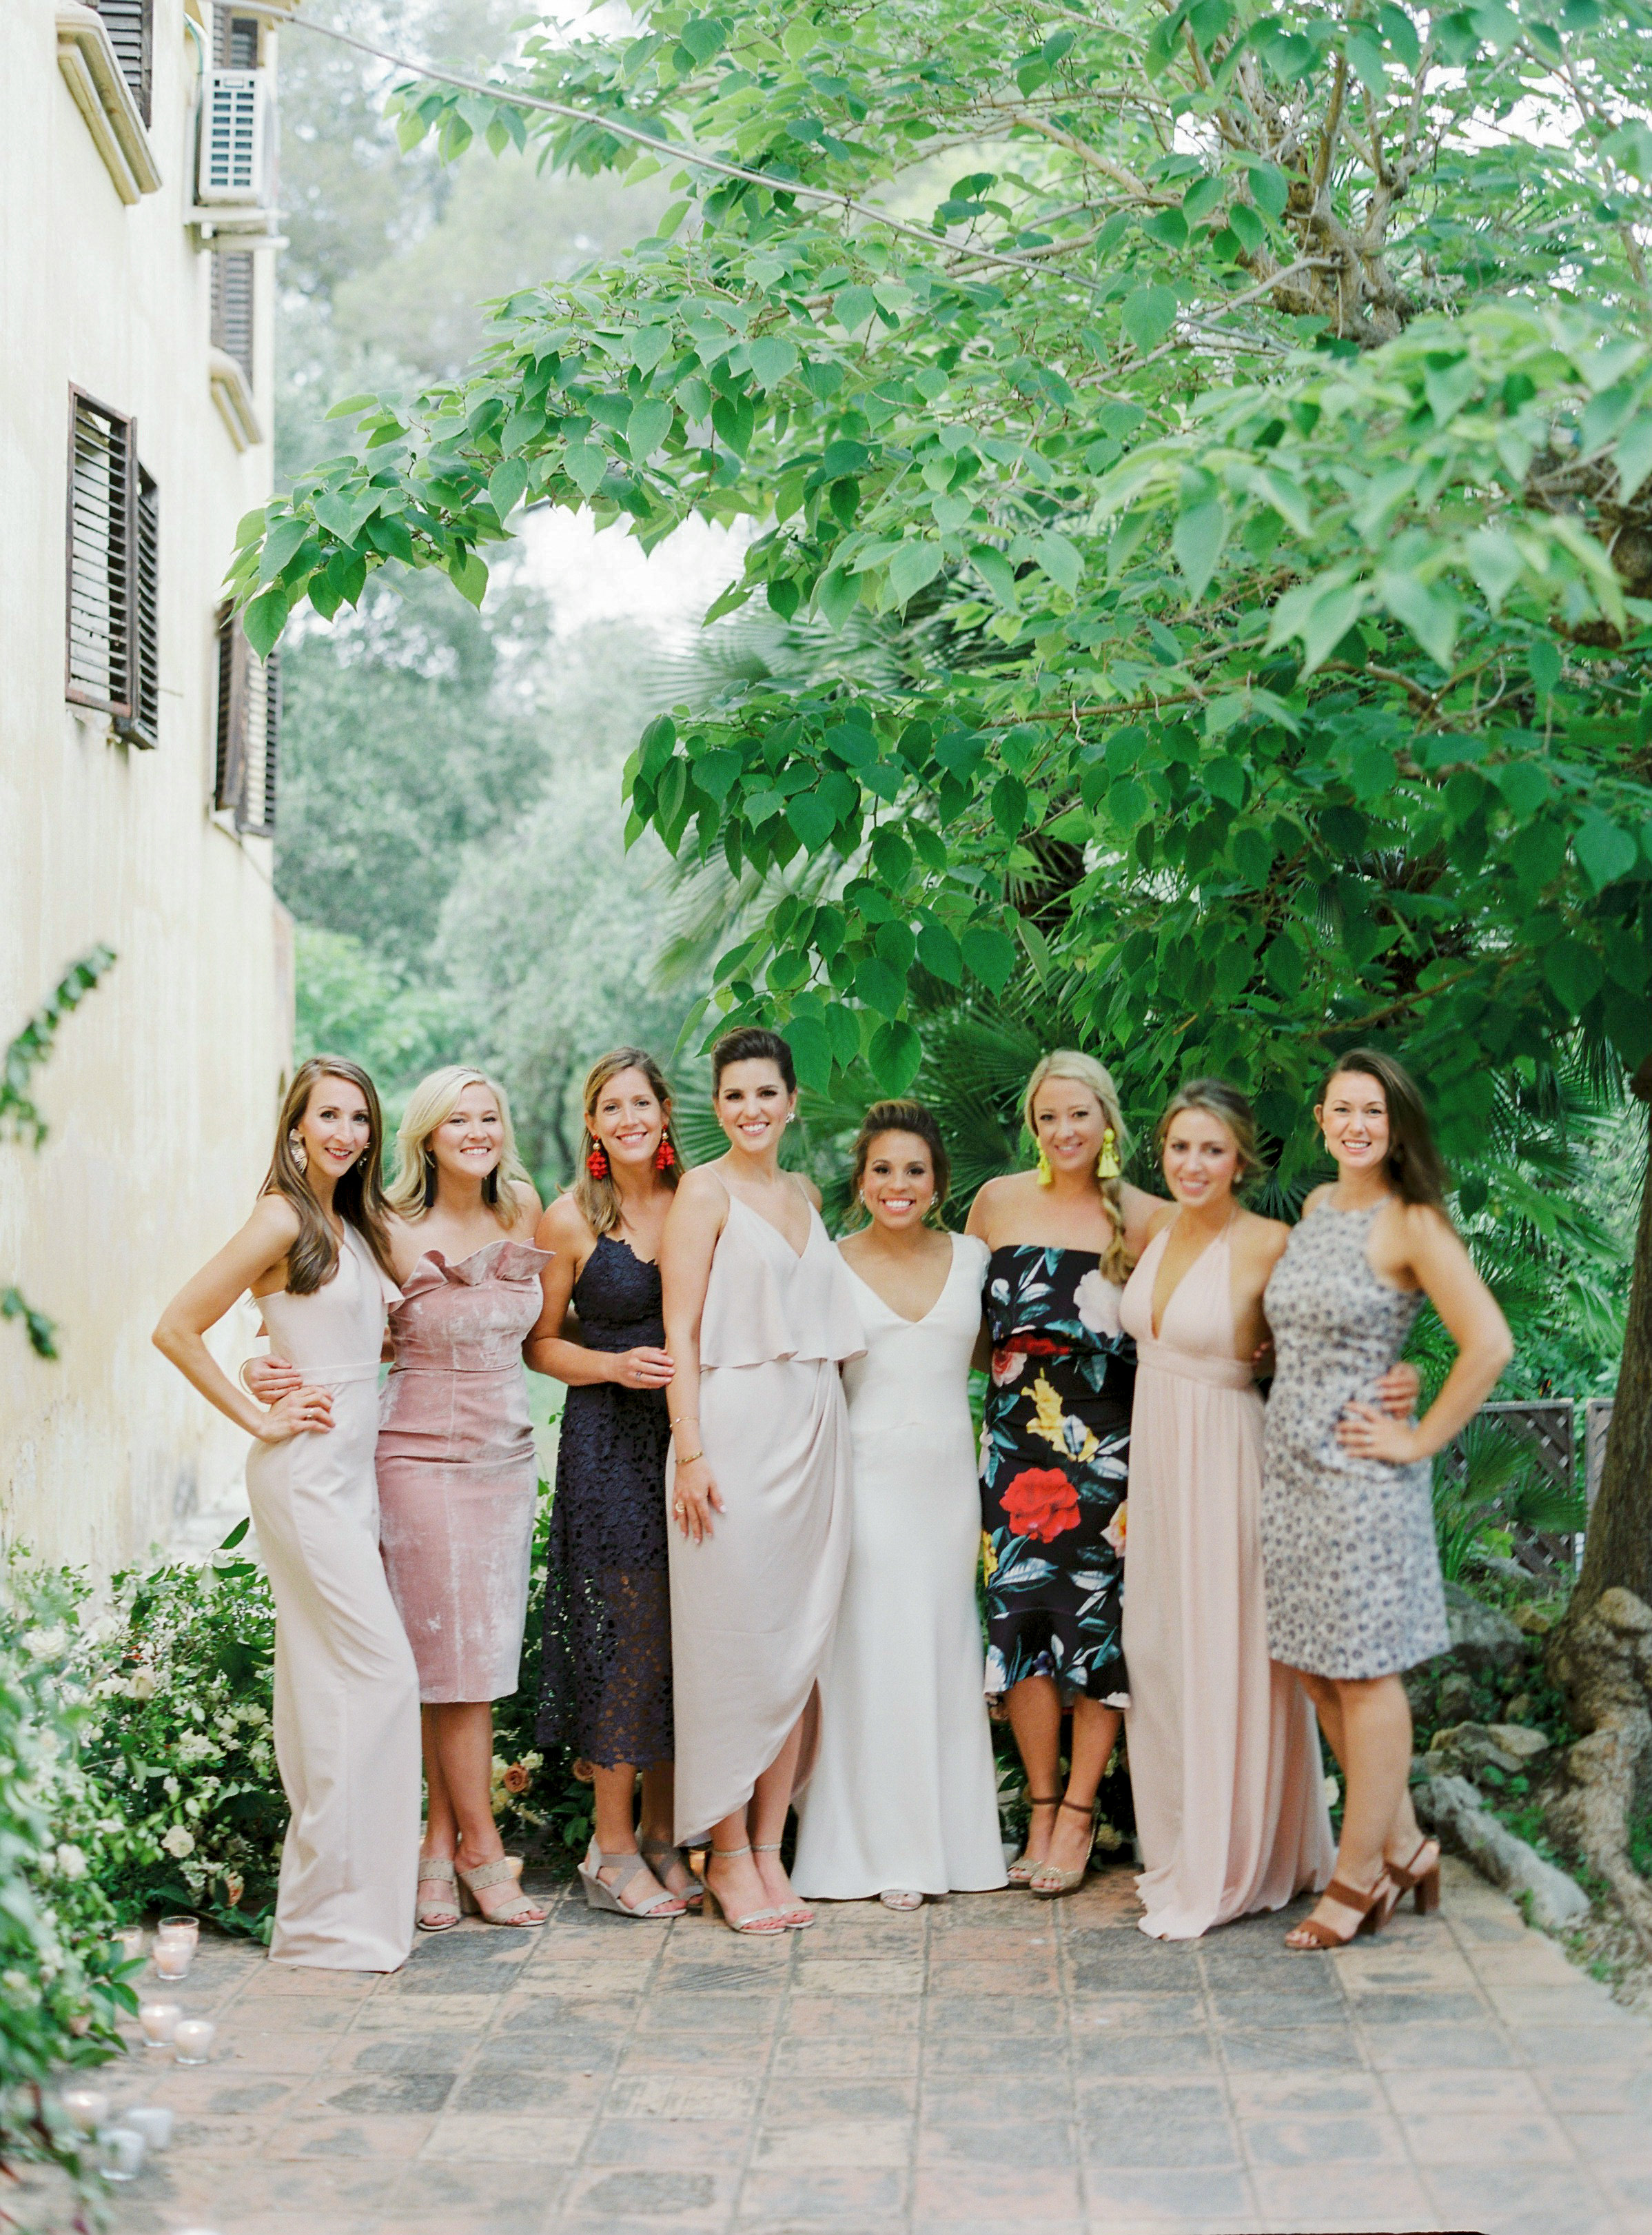 wedding guests pose with bride outdoors